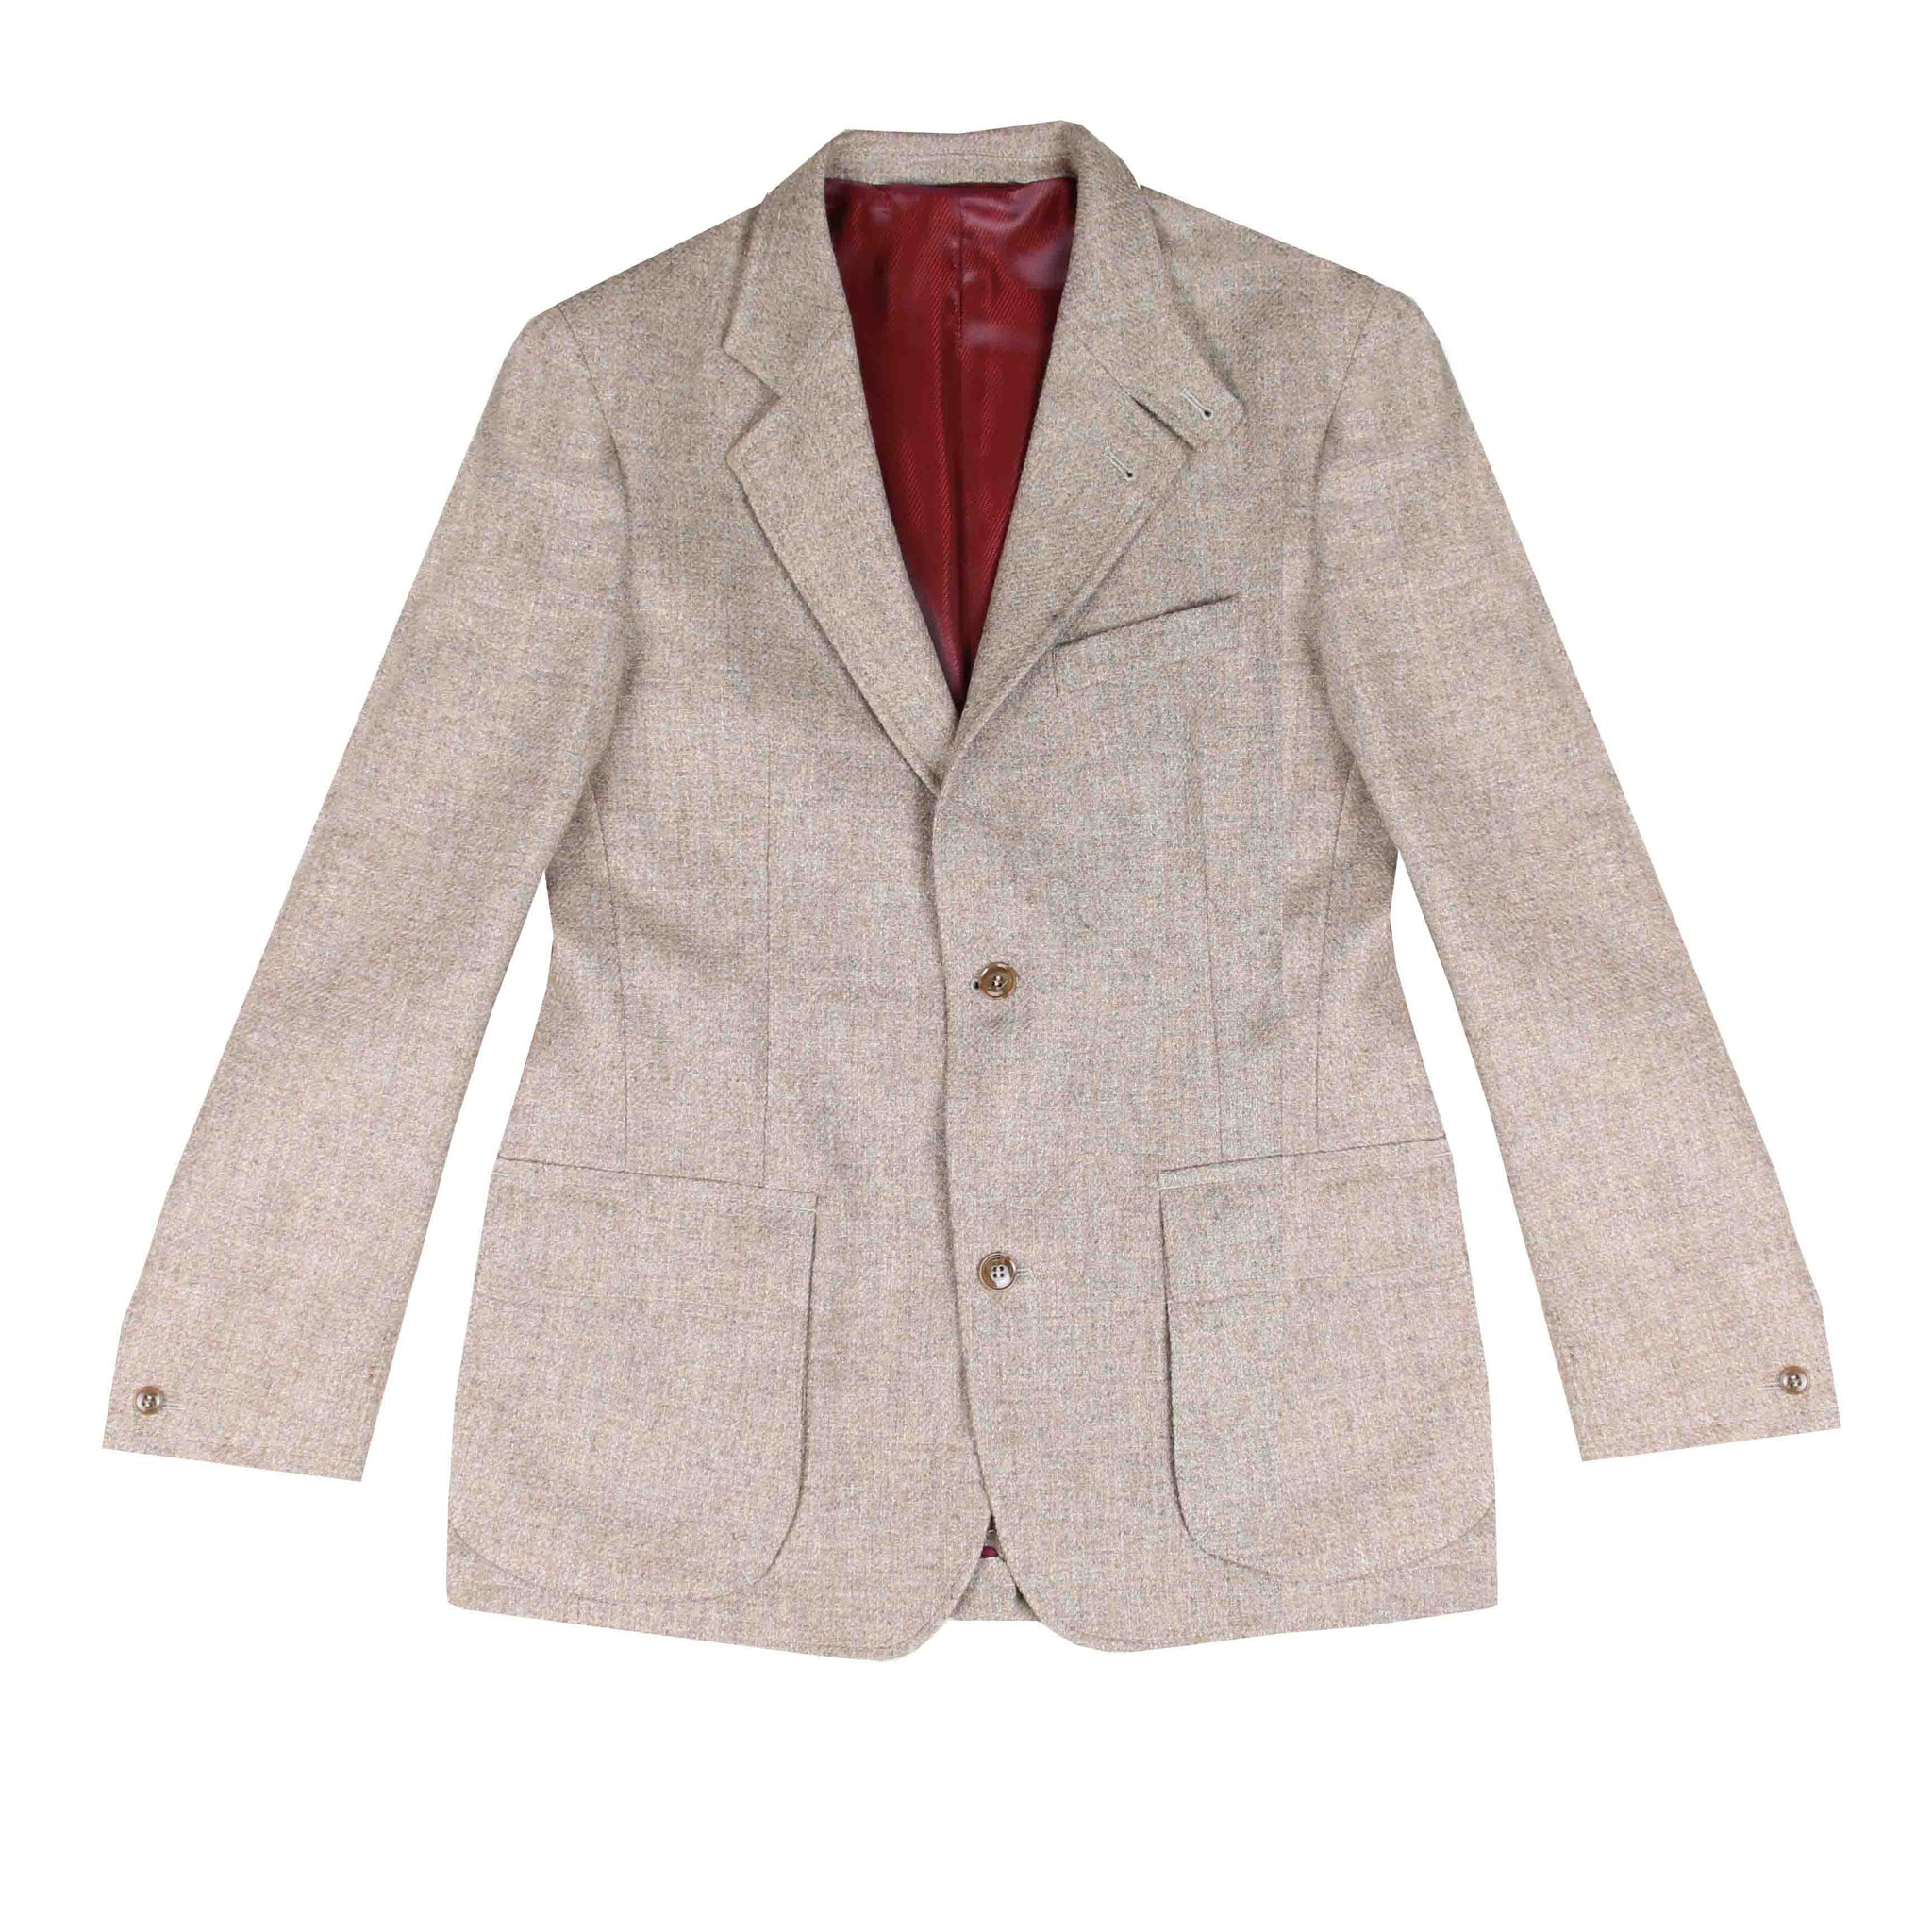 Veste Beaumont new wool millet